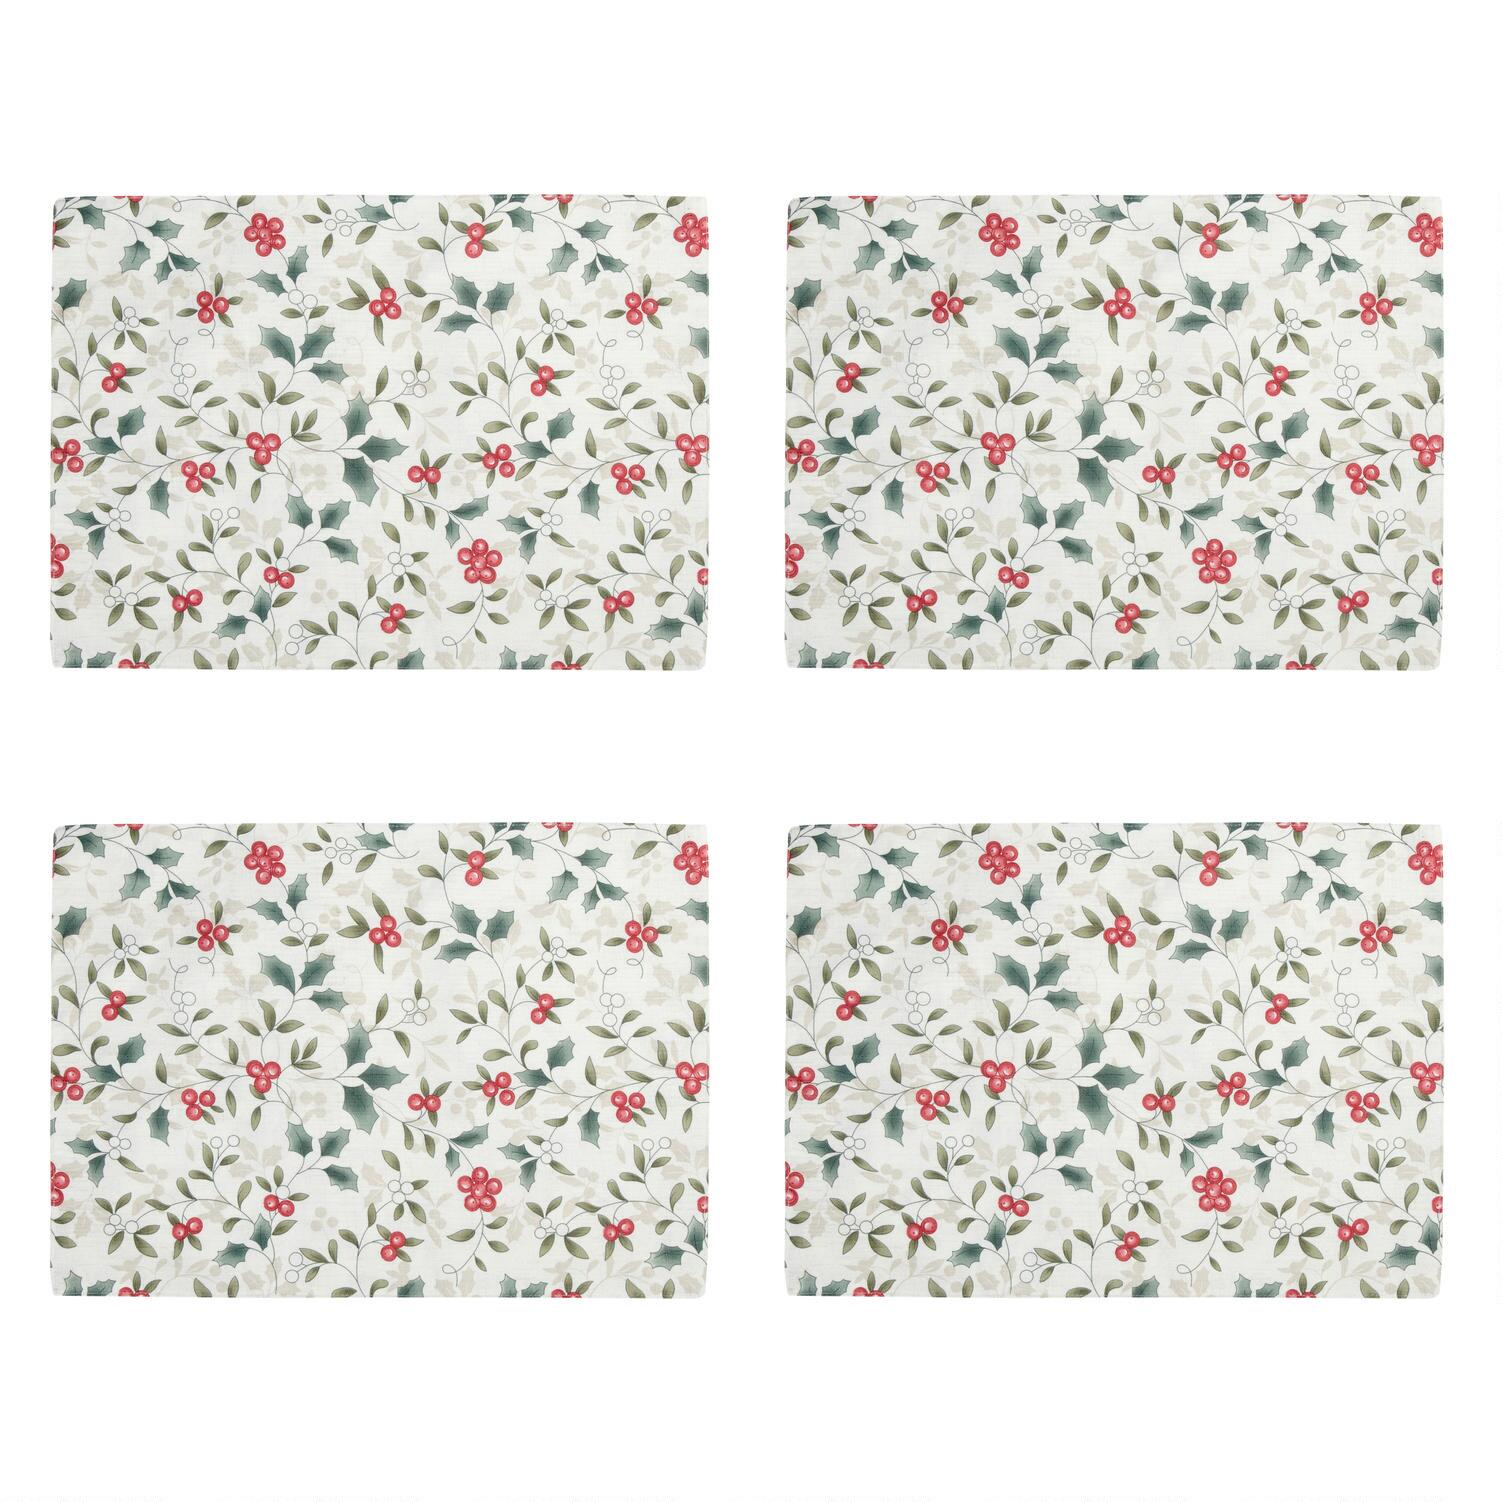 - Pine Pink by olive/&me/_studios Winter Berries Placemats Set of 4 Holiday Decor Pine Pink Red White  Cloth Placemats by Spoonflower